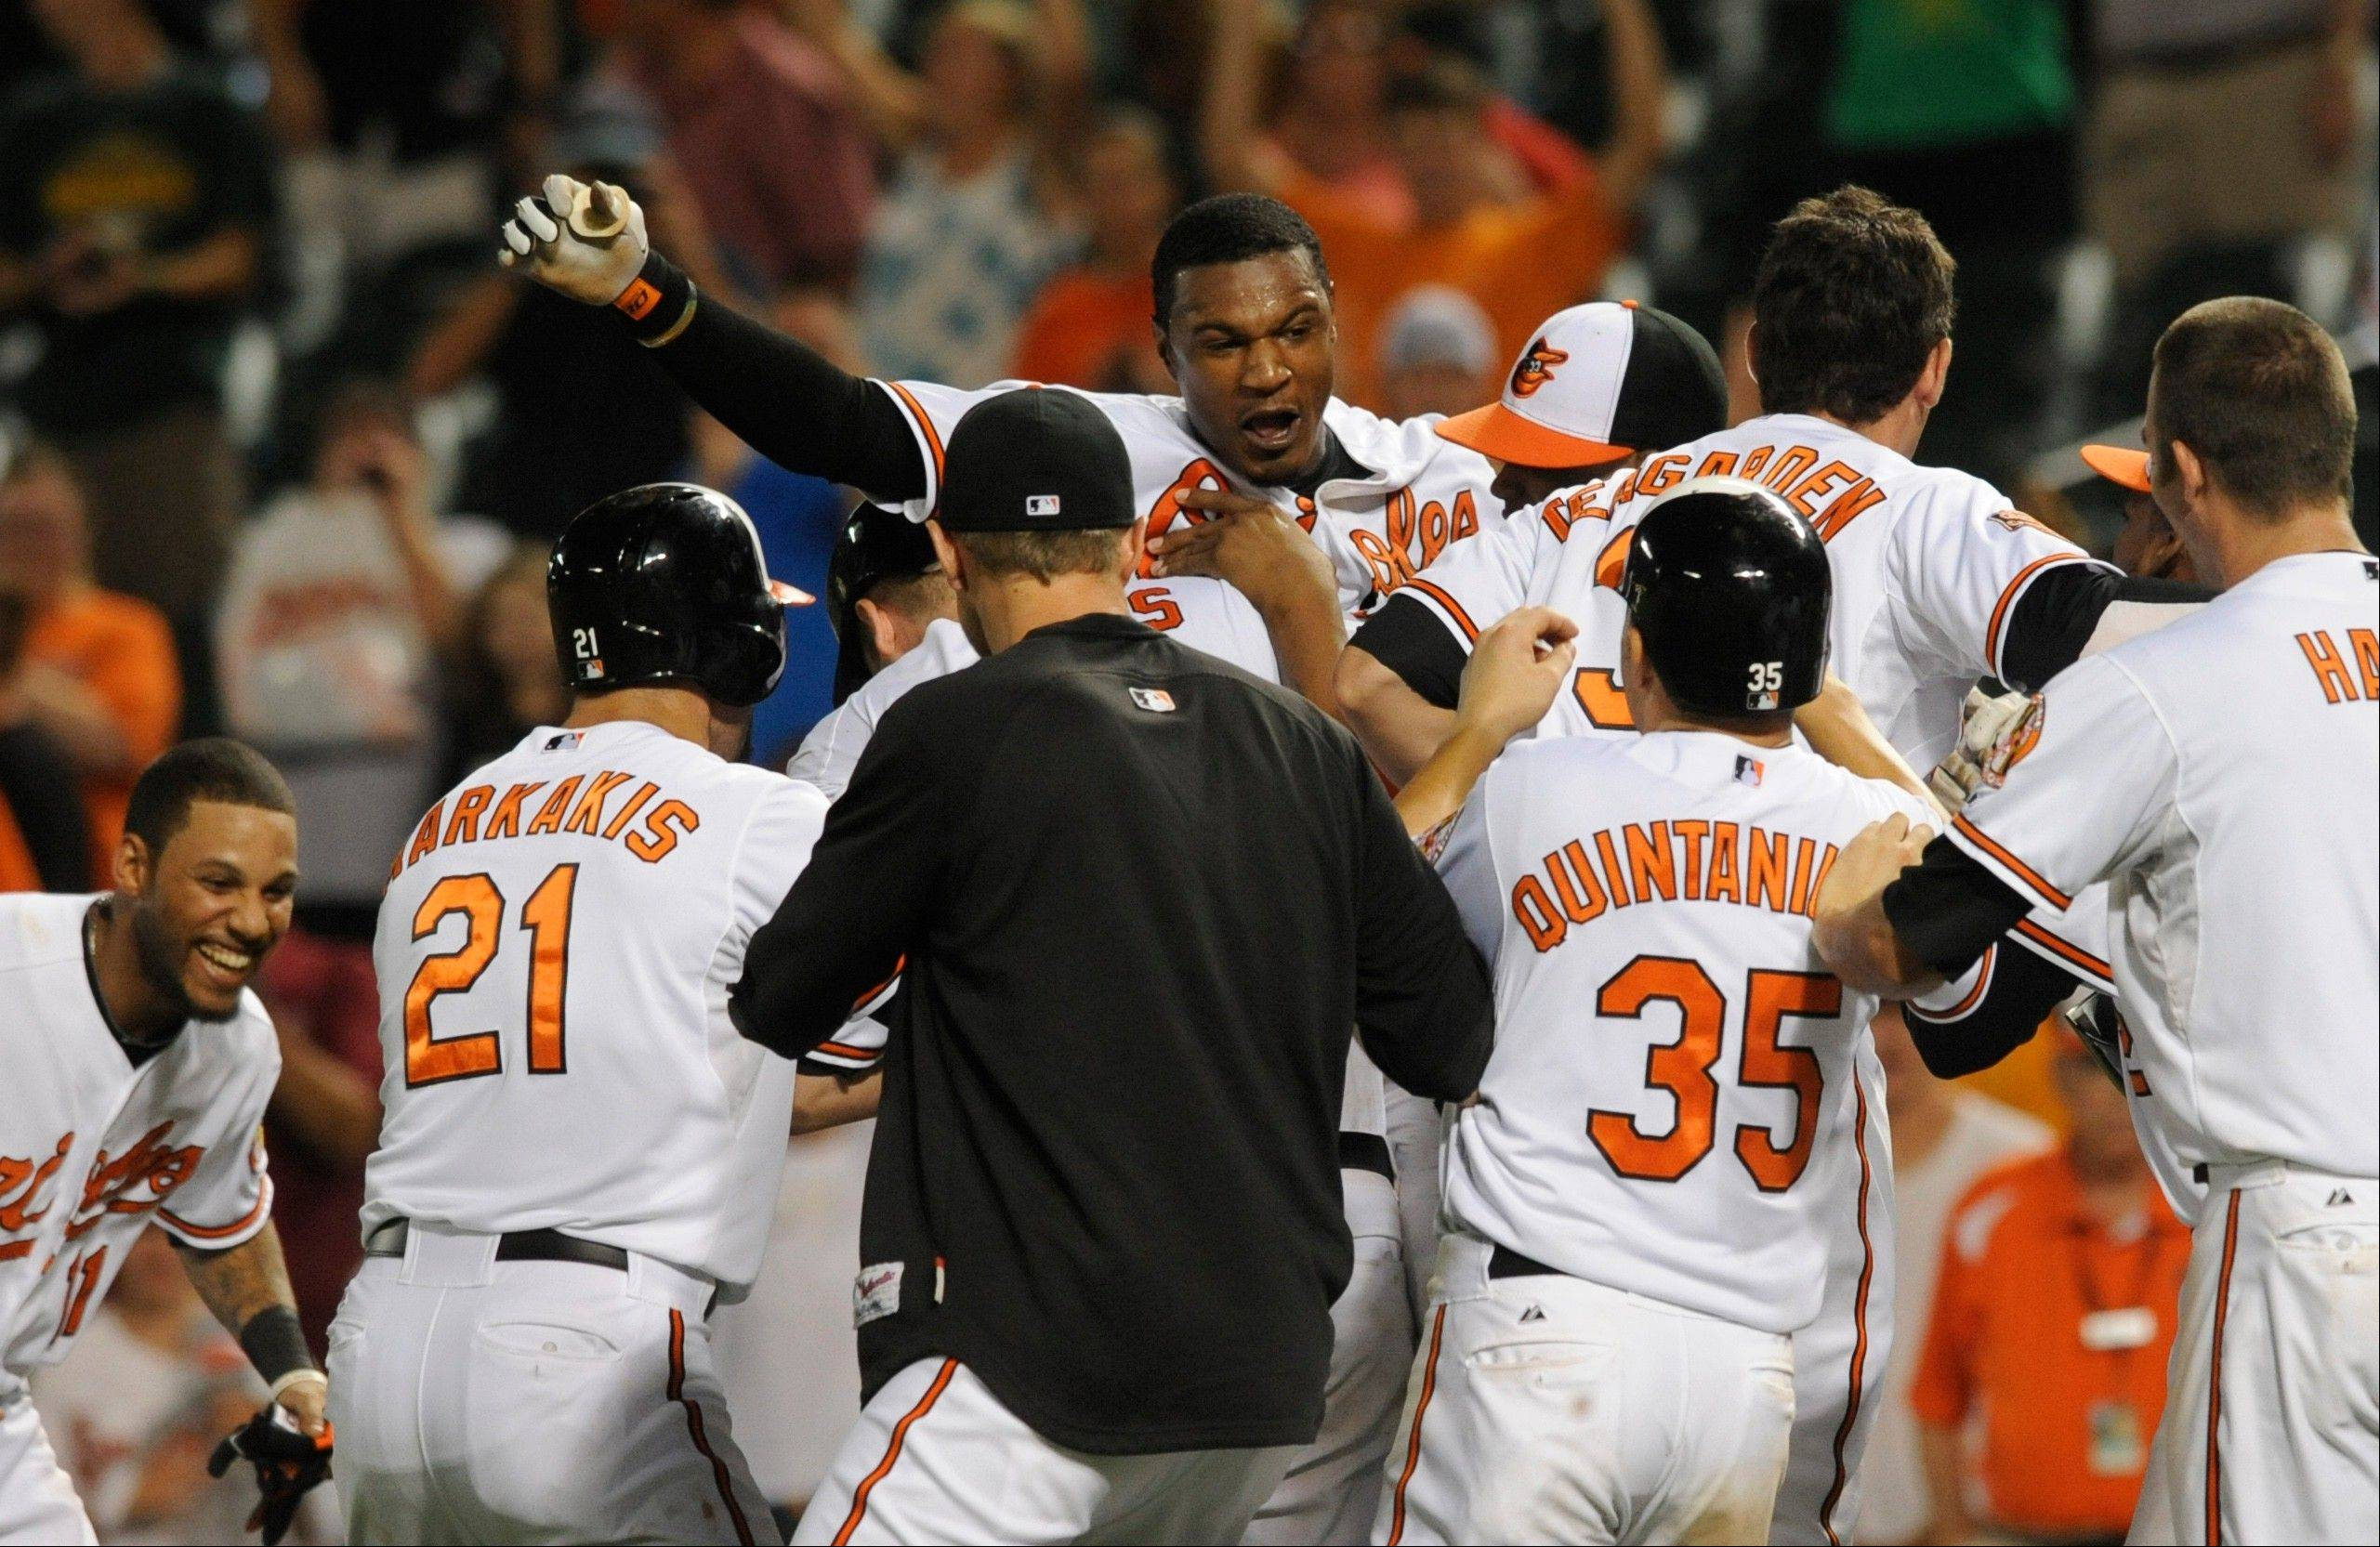 Baltimore players swarm Adam Jones after he drove in the winning run against the Seattle Mariners in the 14th inning Tuesday at home.